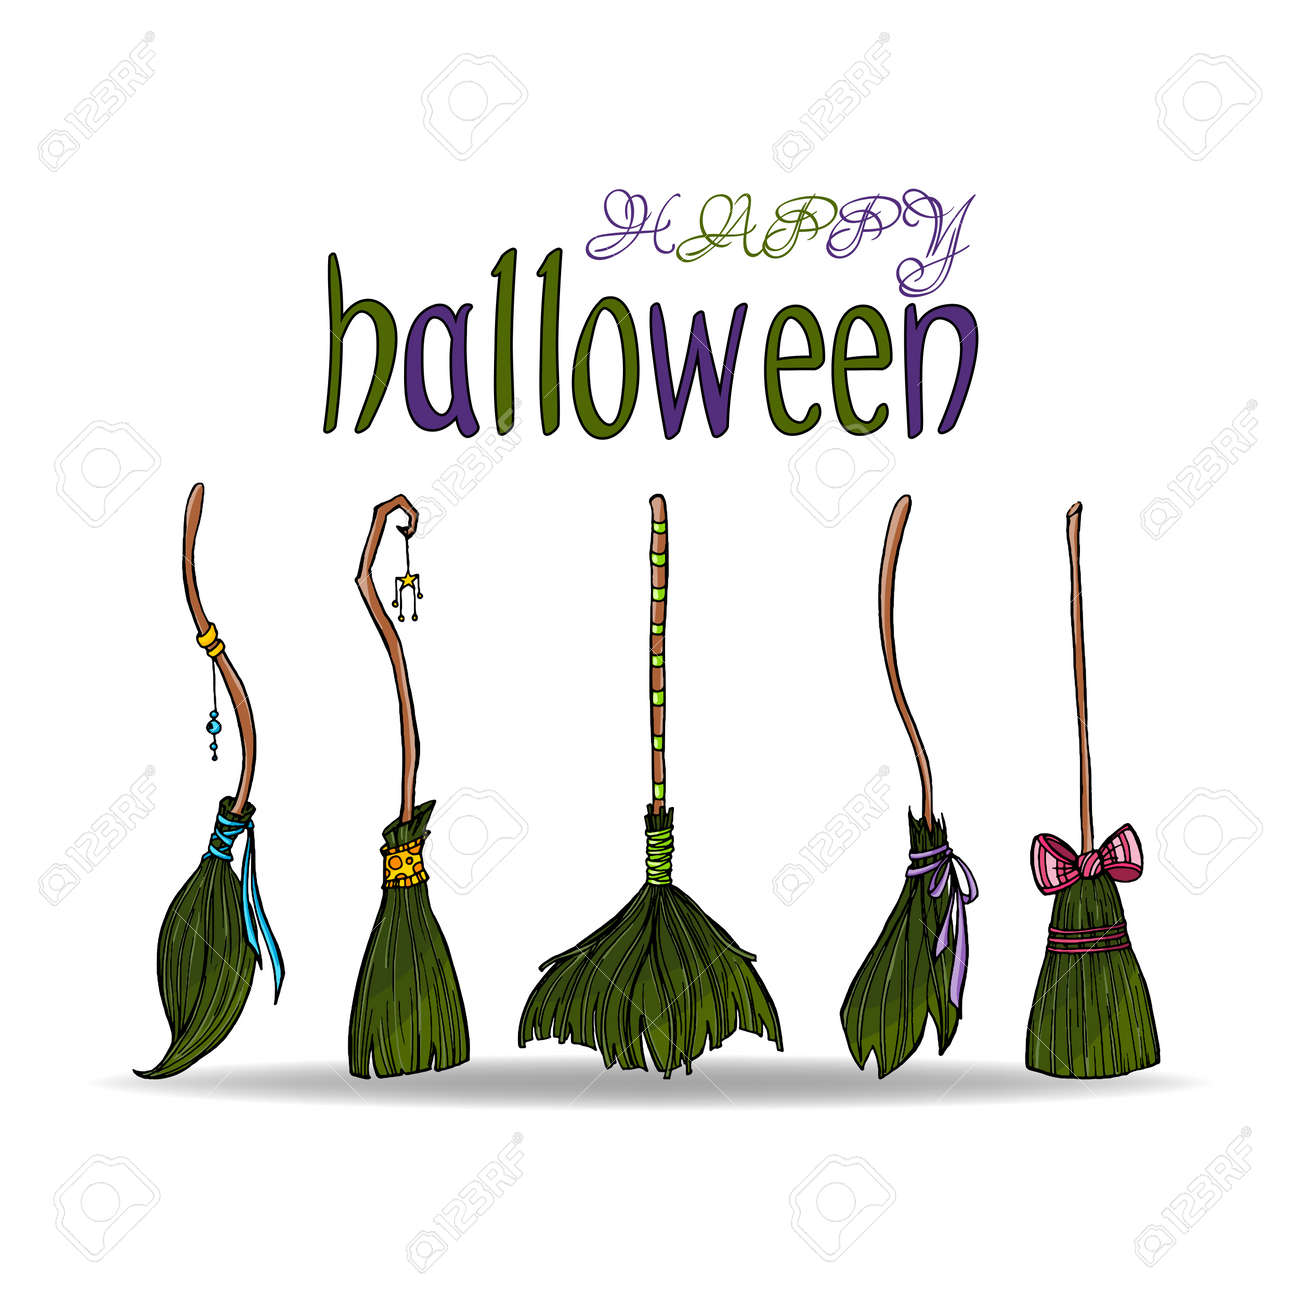 Happy Halloween Card With Different Cute Witch Brooms. Stock Vector    79981291